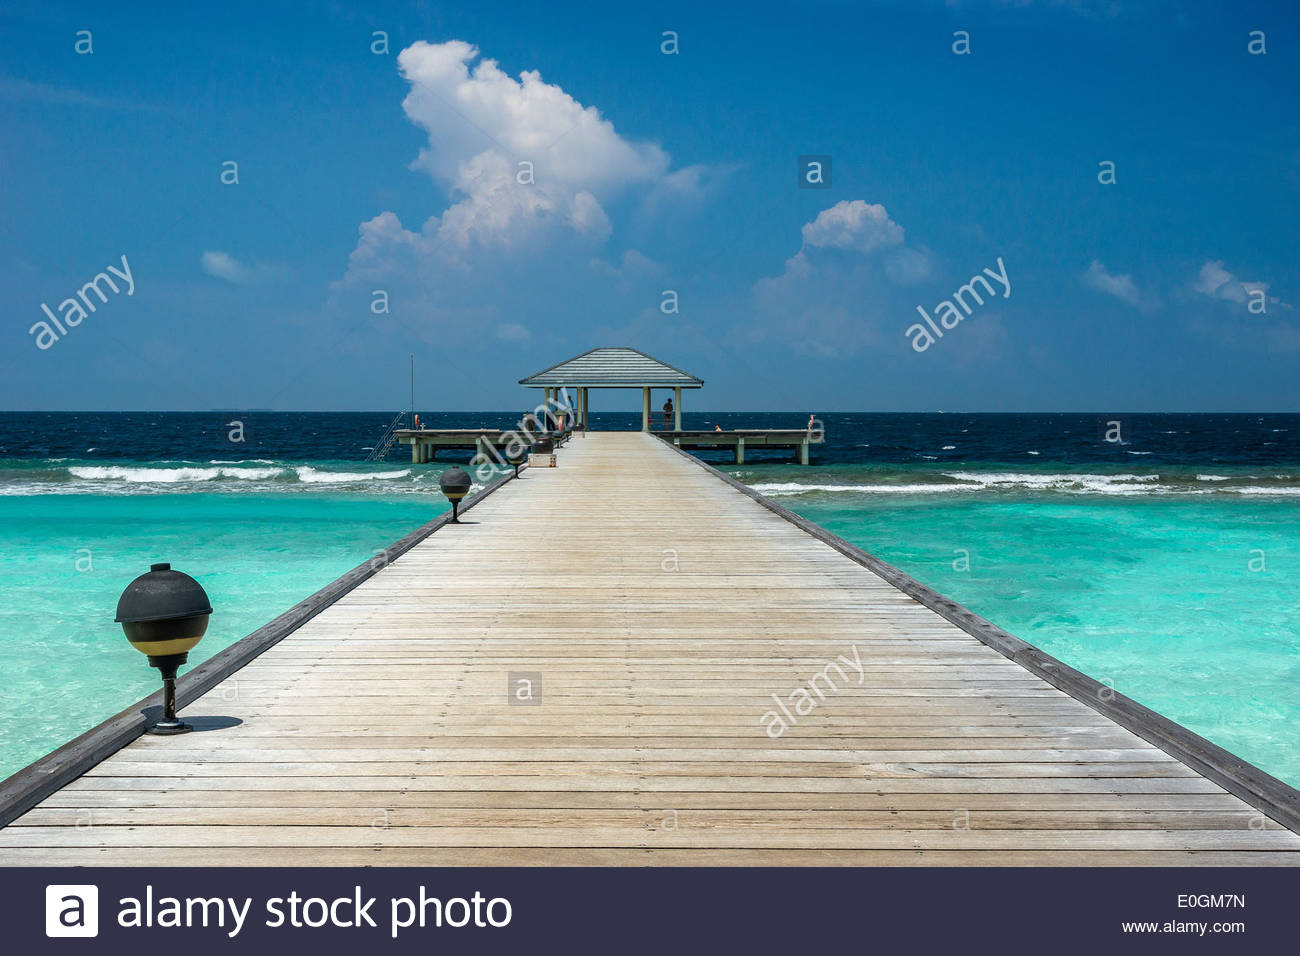 Maldives : jetty (pier) of Royal Island resort and spa on Horubadhoo island - Baa atoll - Stock Image